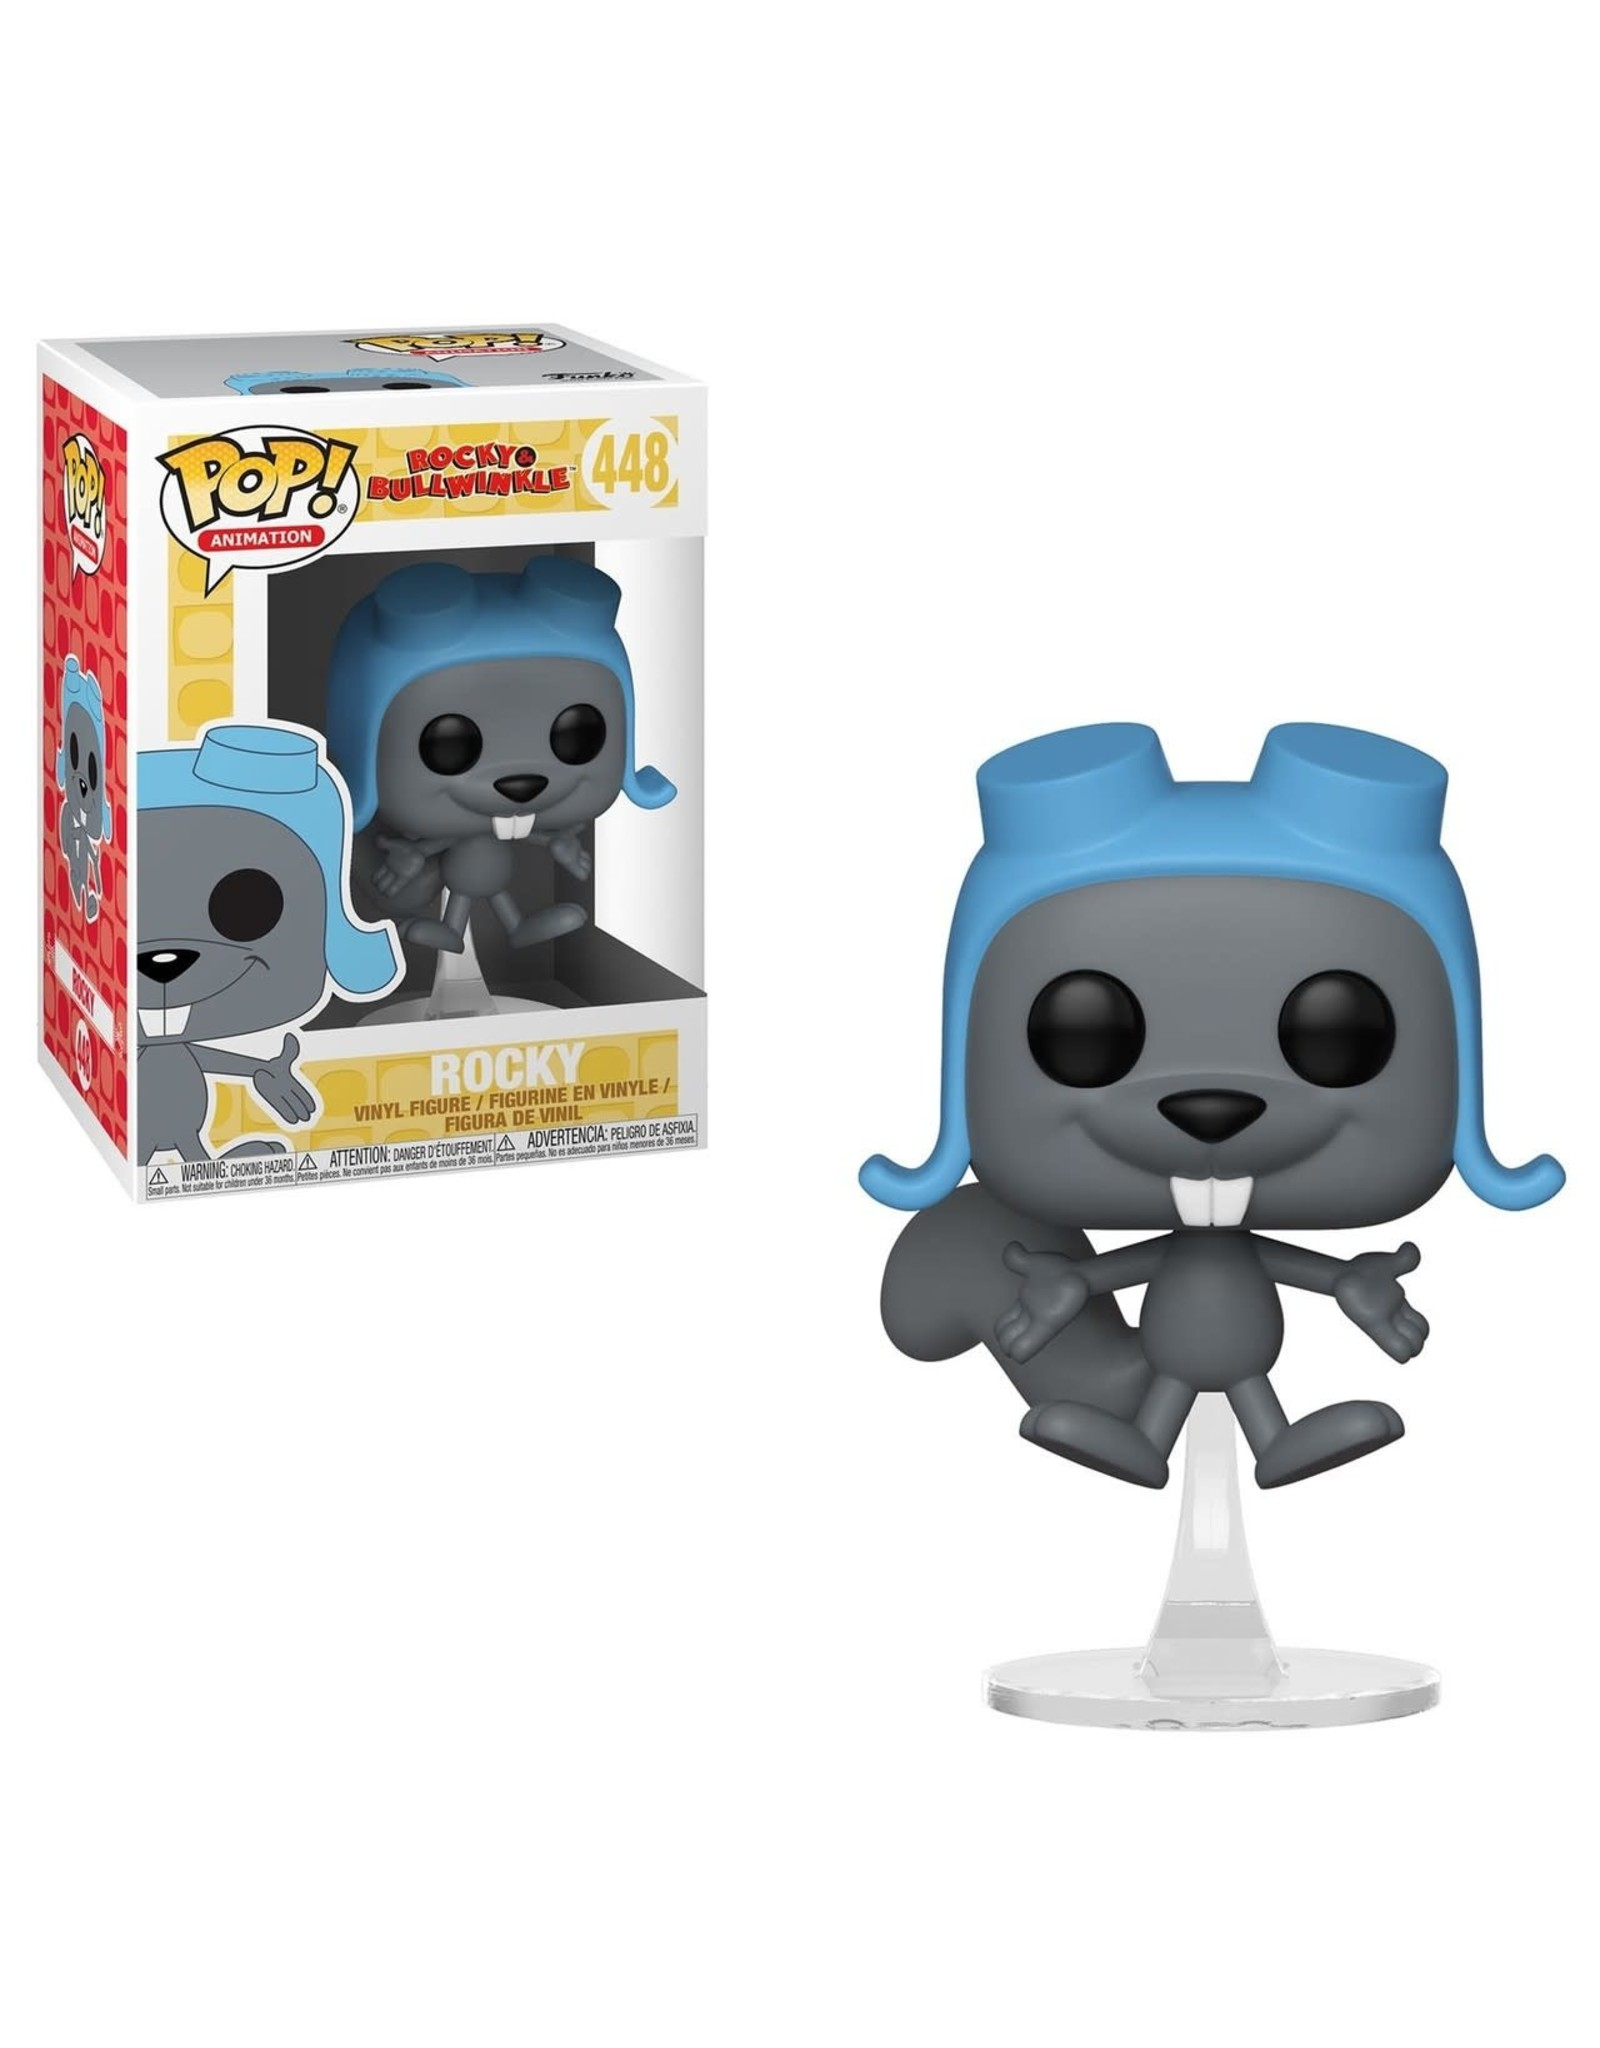 FUNKO POP ROCKY & BULLWINKLE FLYING ROCKY VINYL FIG